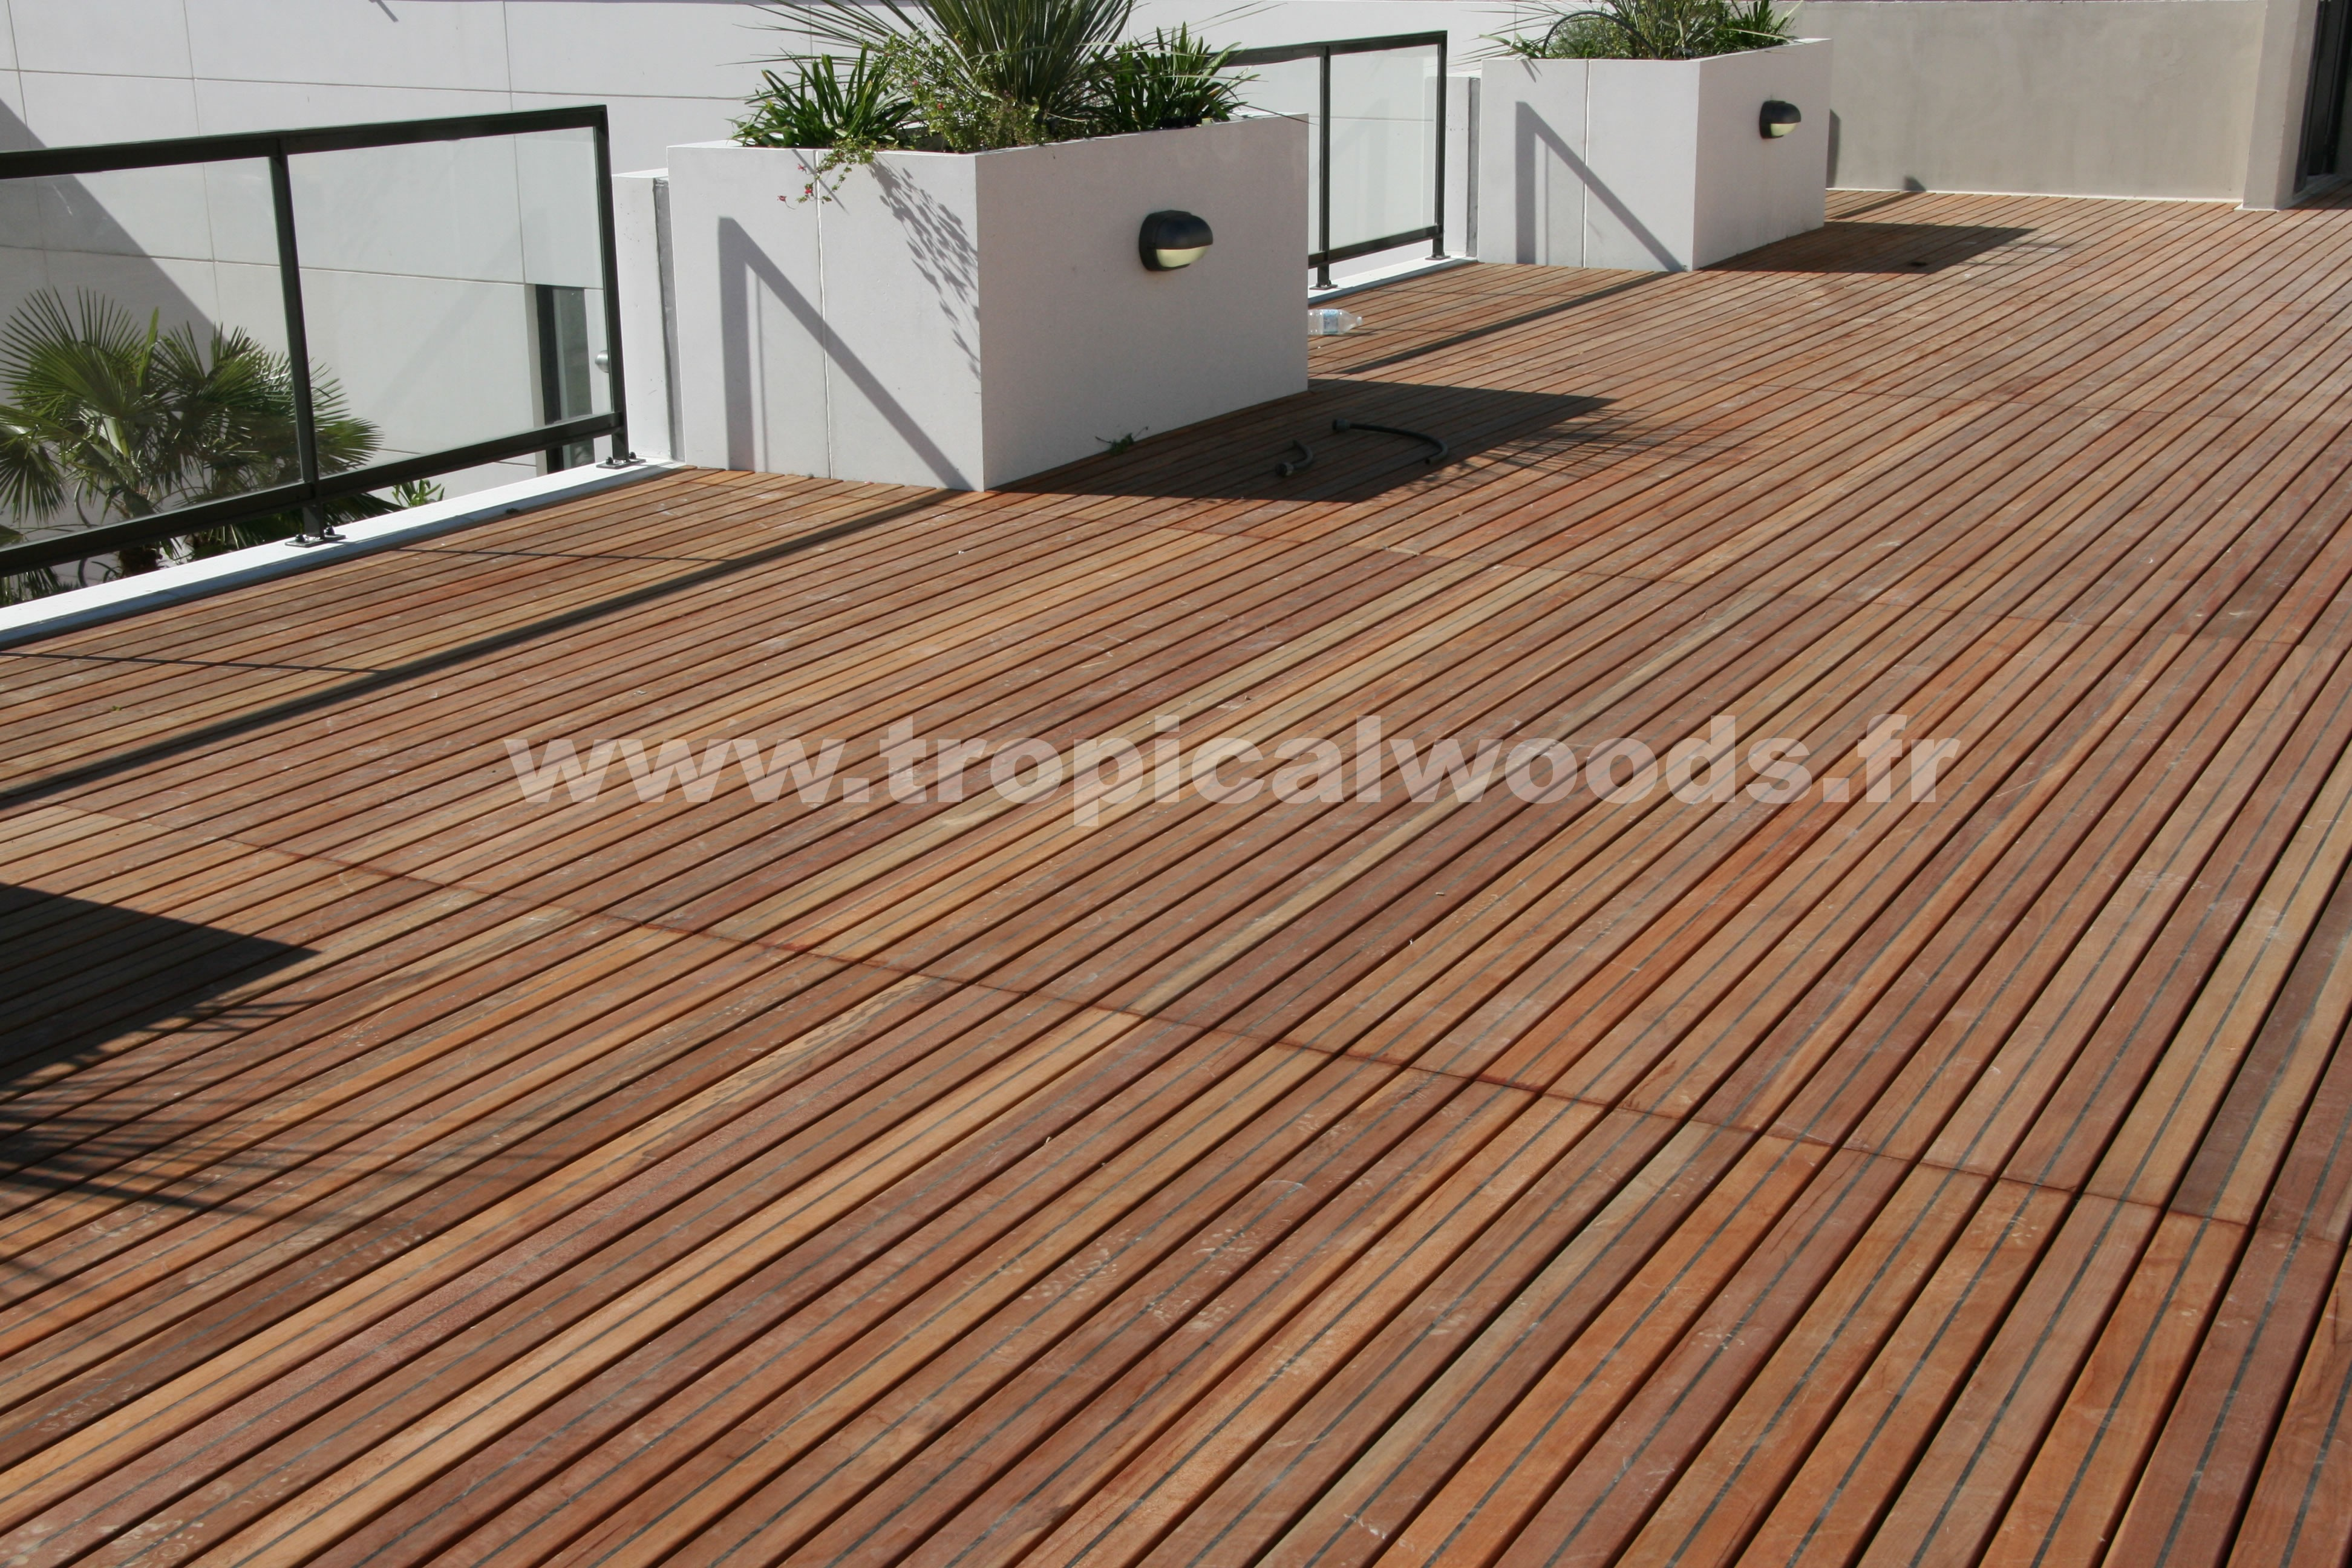 terrasse lames parquet massif niove pont de bateau 22 x 120 mm. Black Bedroom Furniture Sets. Home Design Ideas